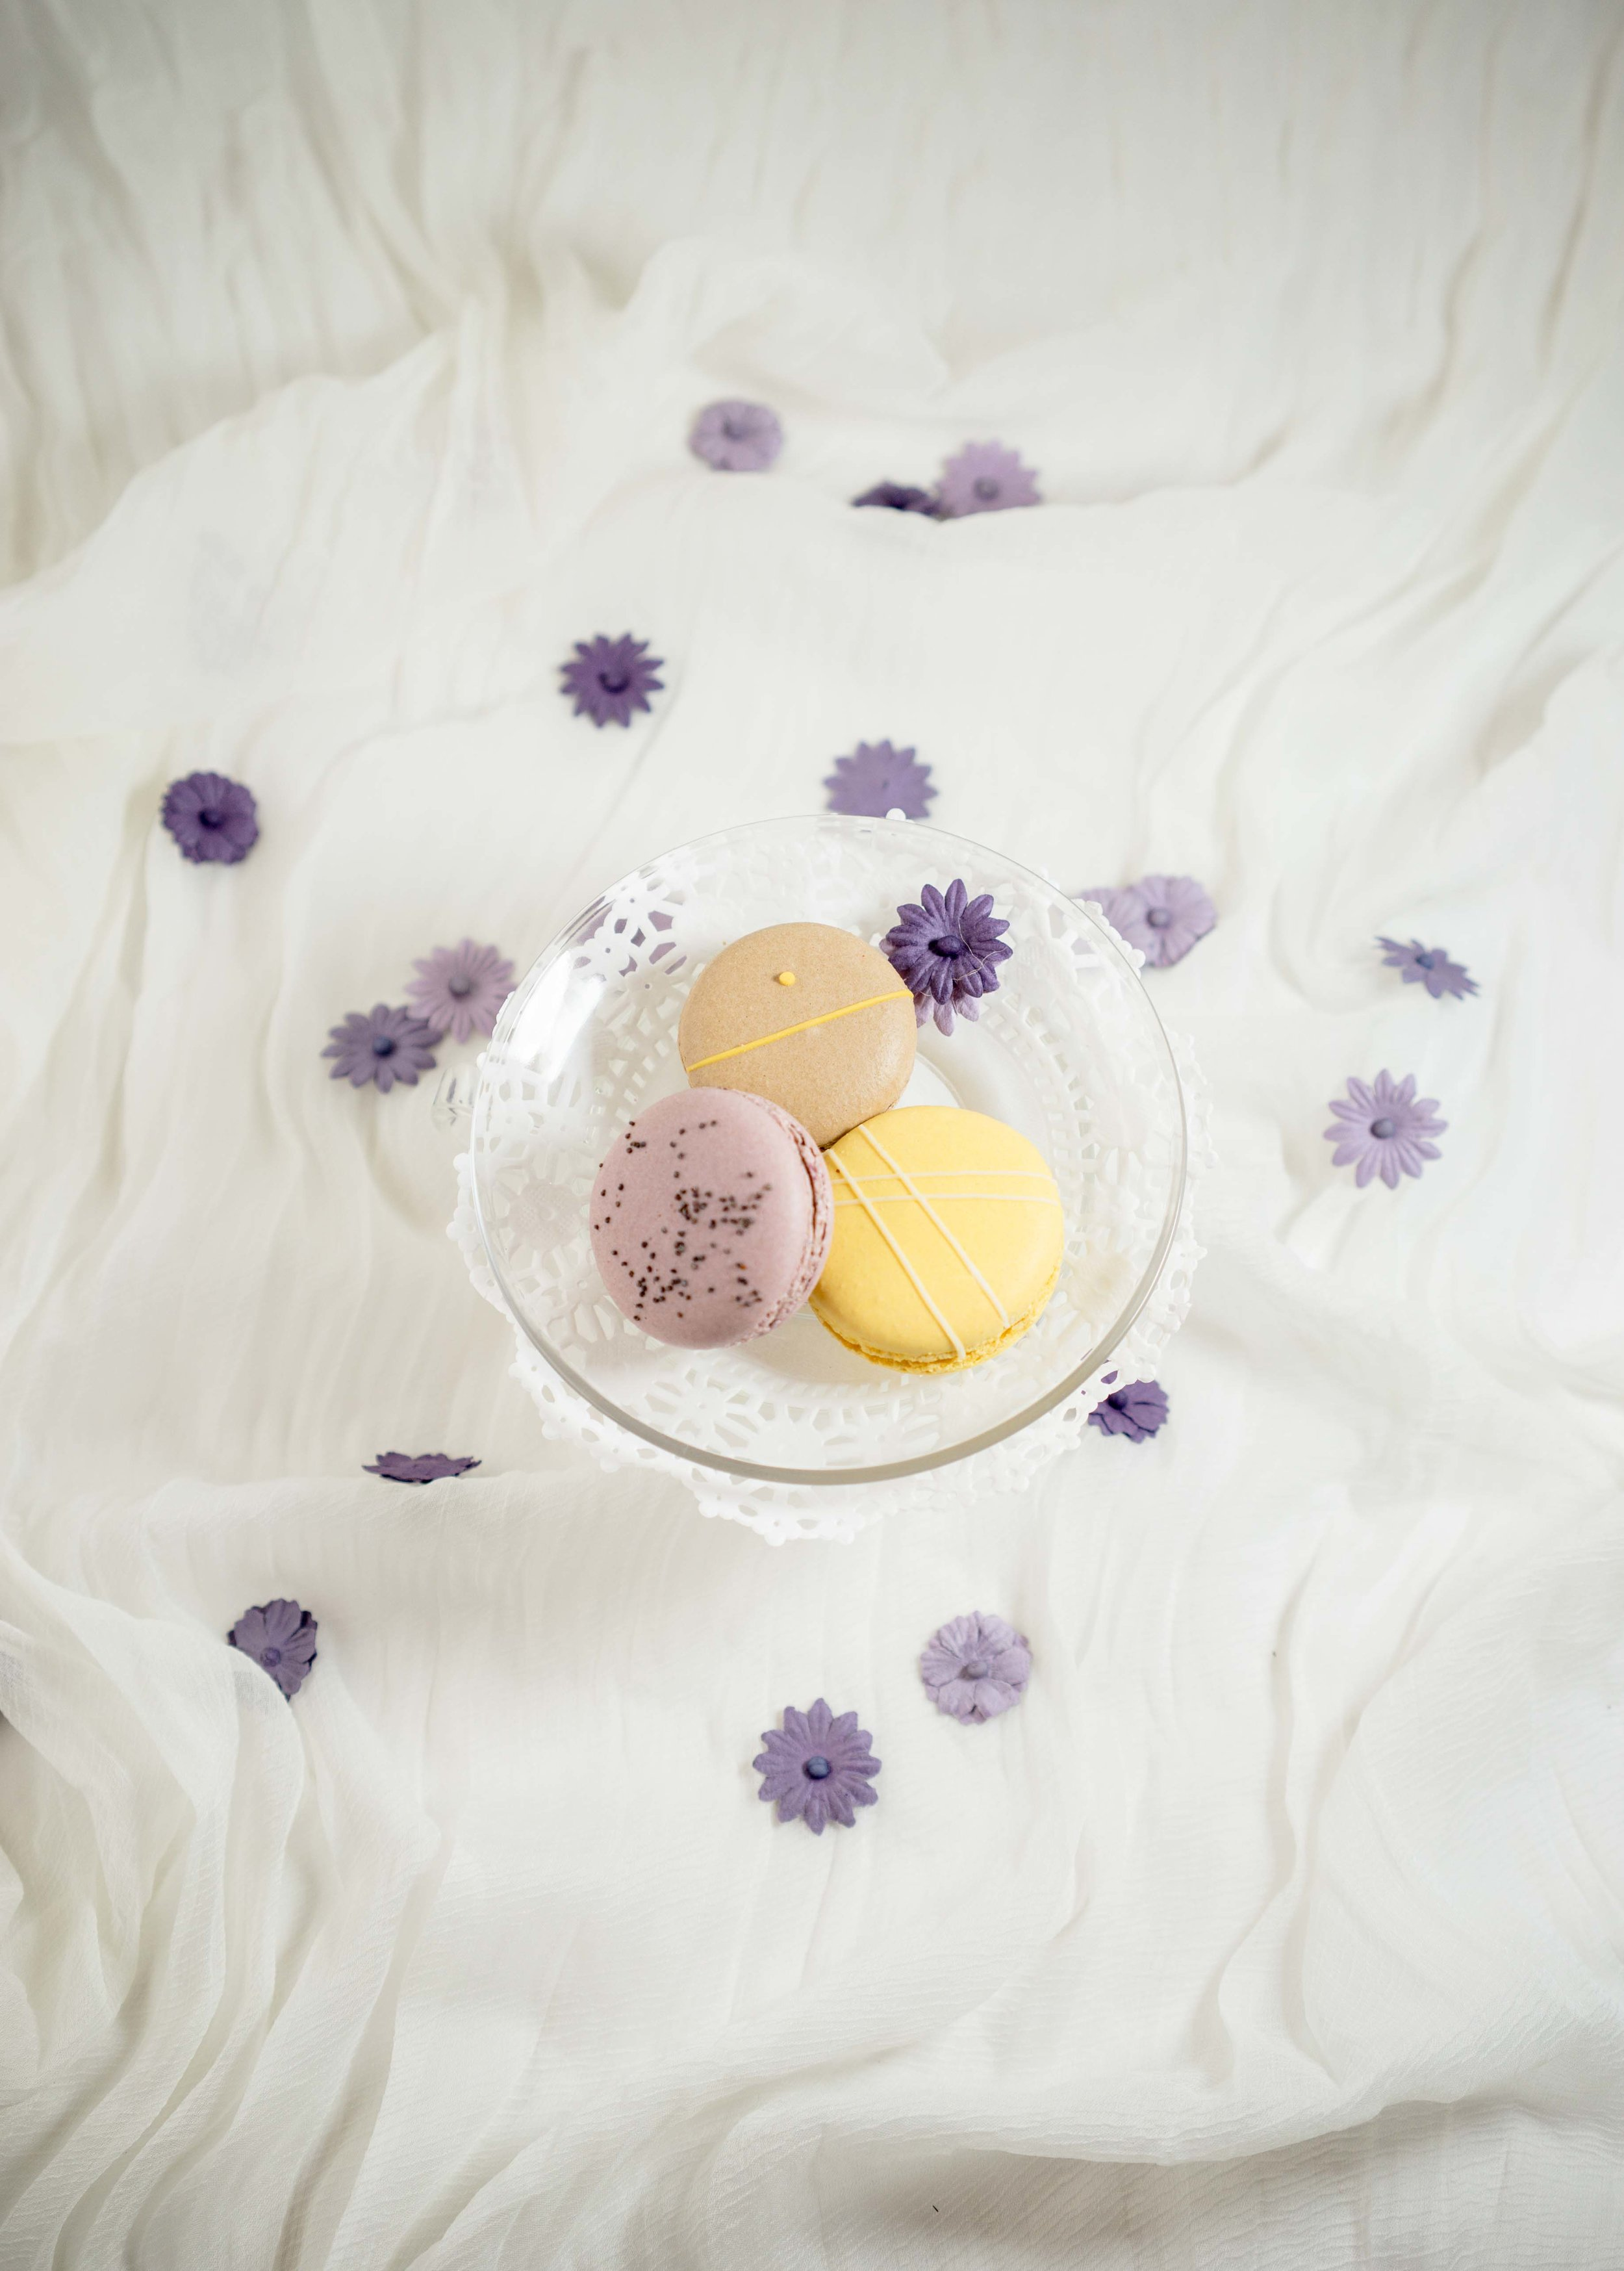 Perfect cookie to go with your choice of herbal tea.